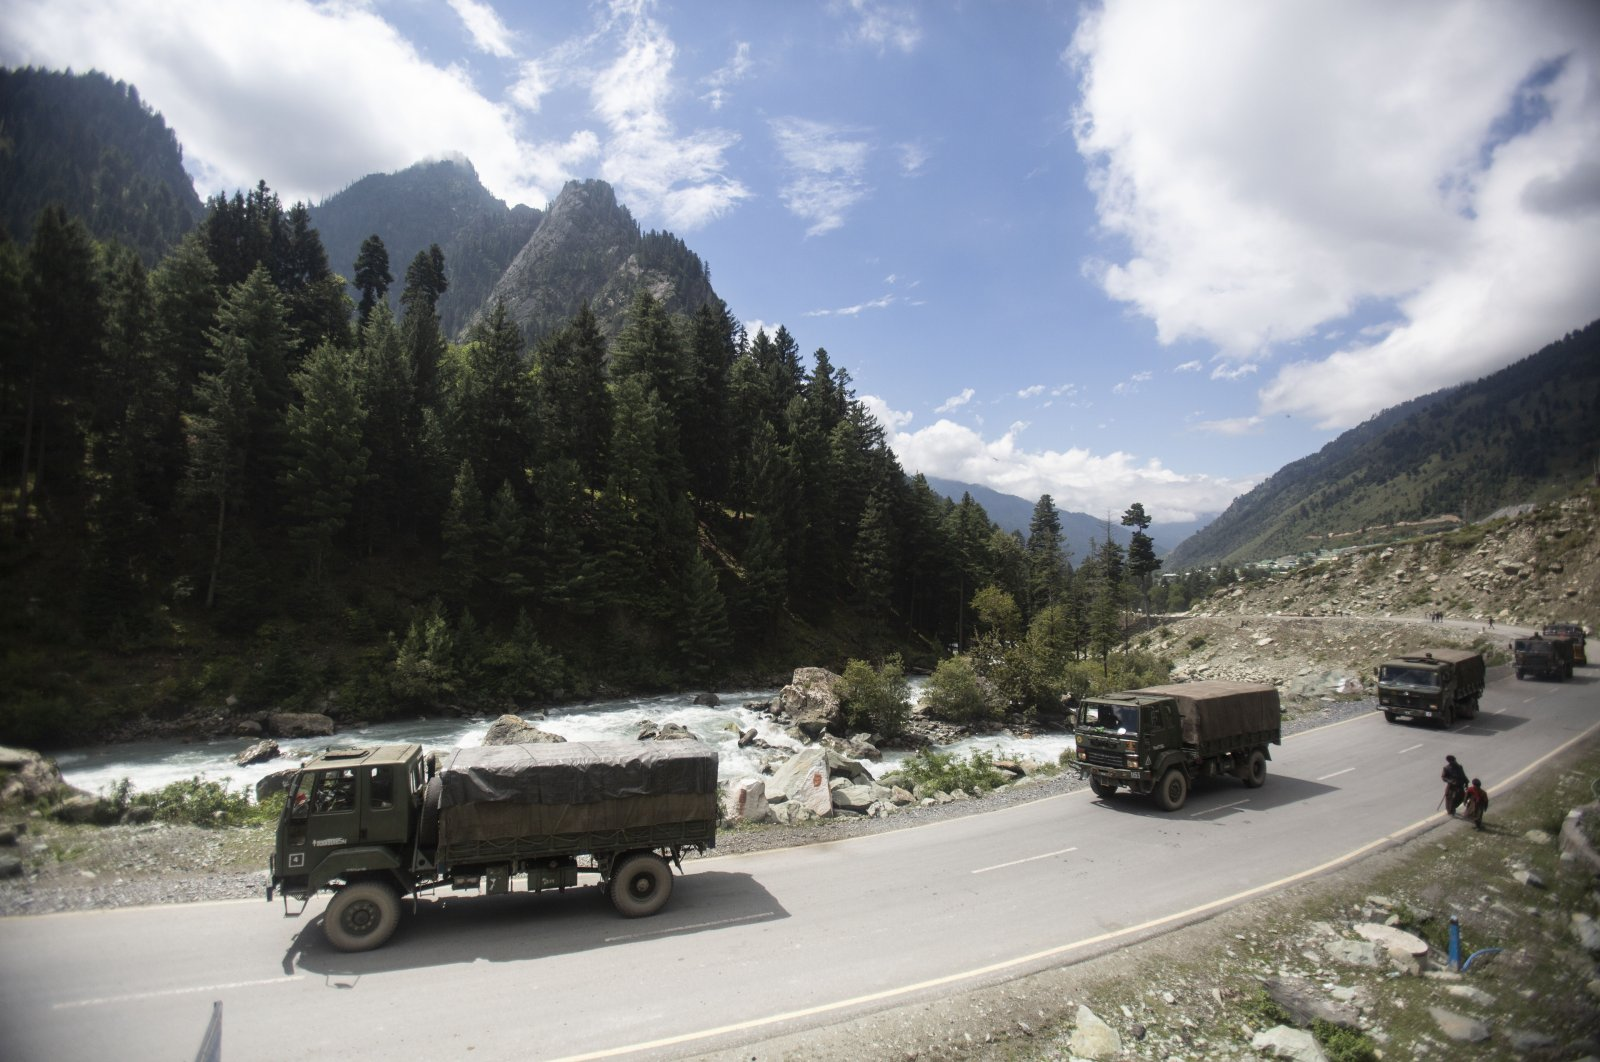 An Indian army convoy moves on the Srinagar-Ladakh highway toward the cold-desert Ladakh region where China and India have been engaged in a tense standoff since May, at Gagangeer, northeast of Srinagar, Indian-controlled Kashmir, Sept. 1, 2020.  (AP Photo)